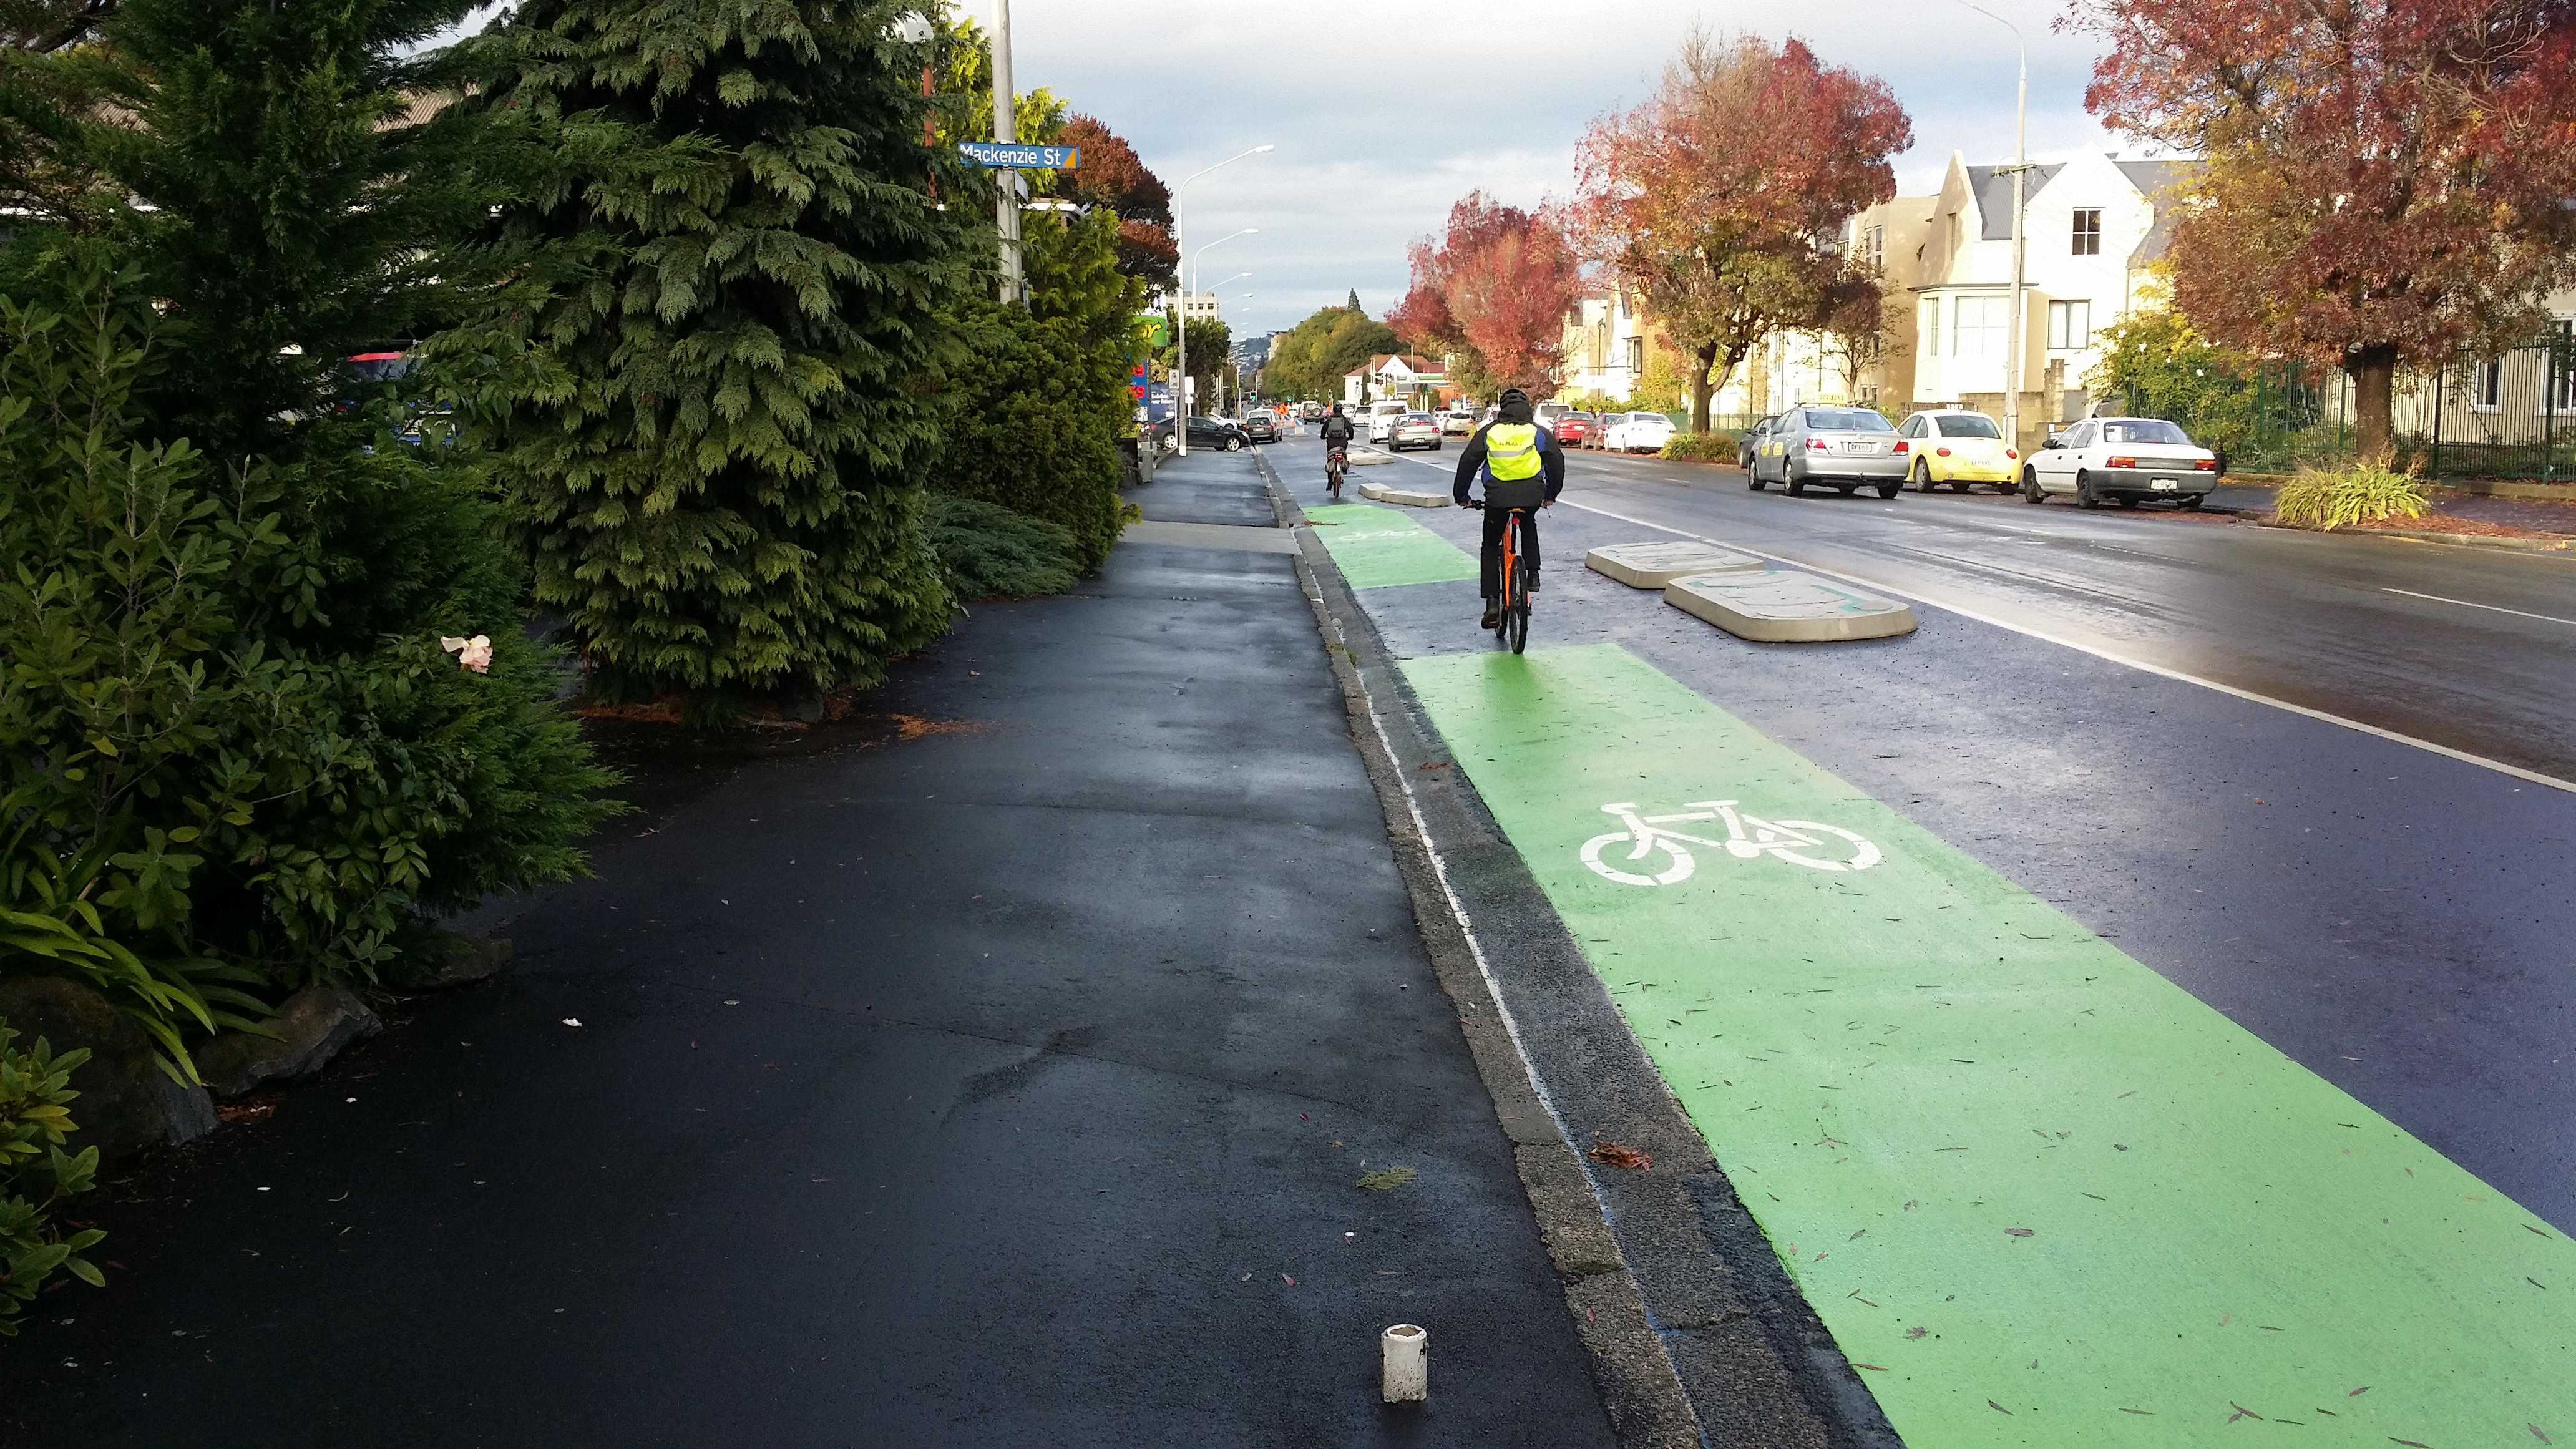 Separated cycle lanes